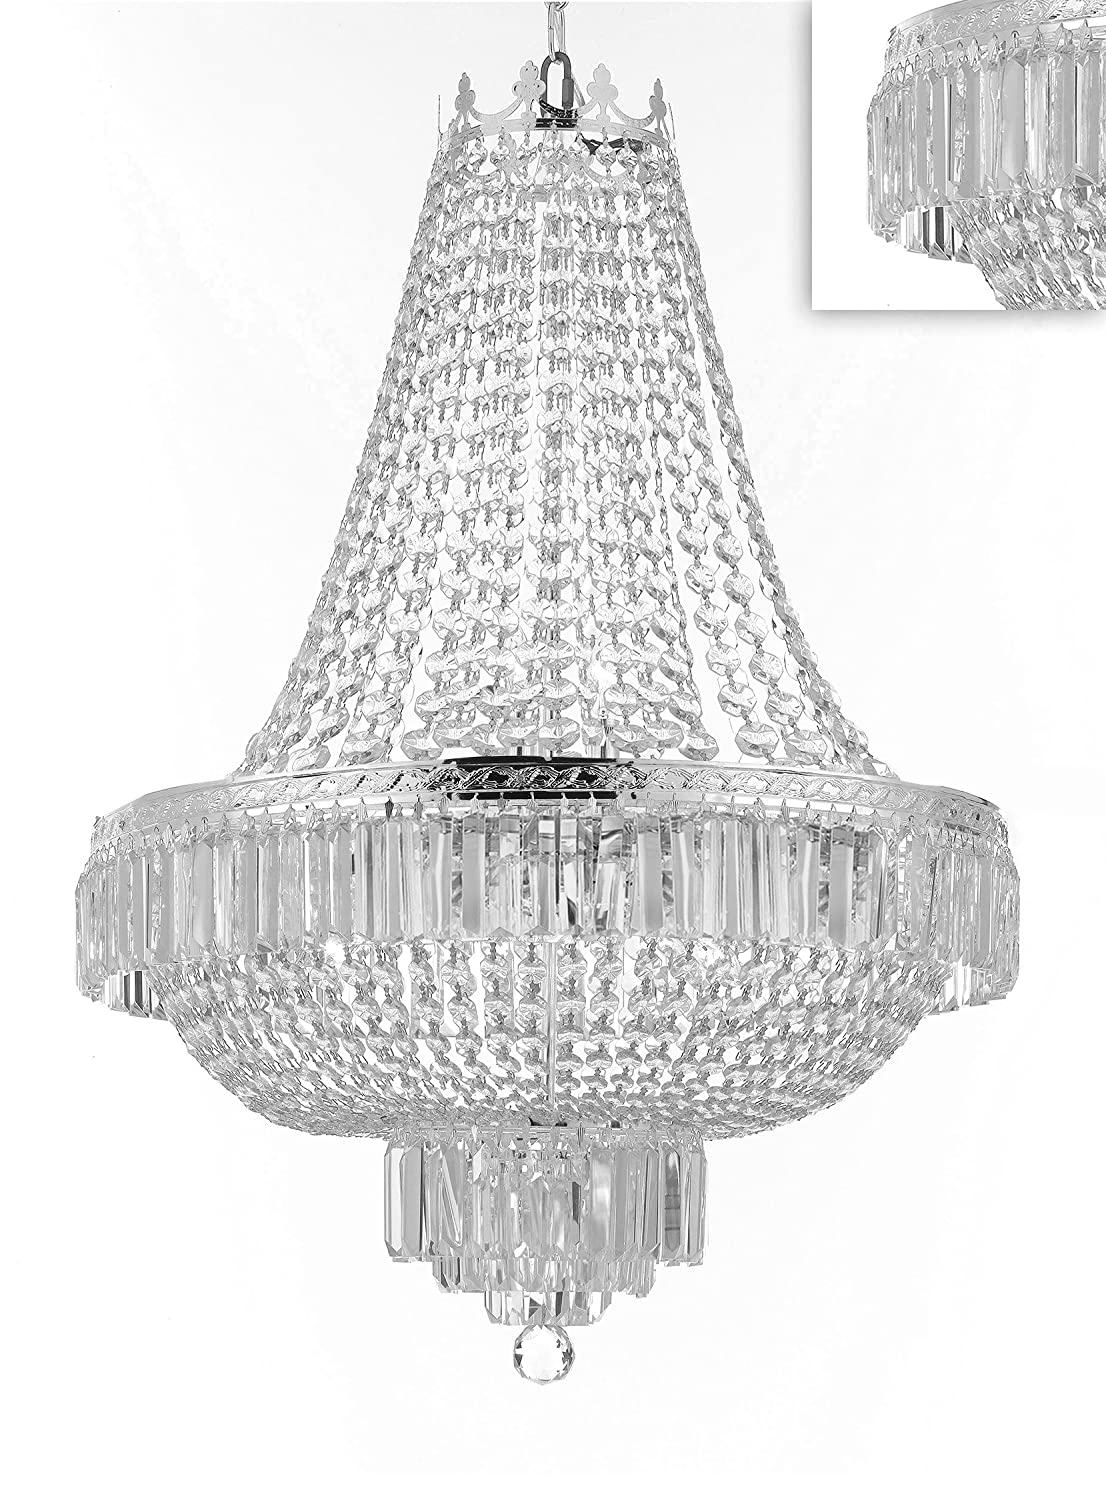 French Empire Crystal Chandelier Lighting Great For The